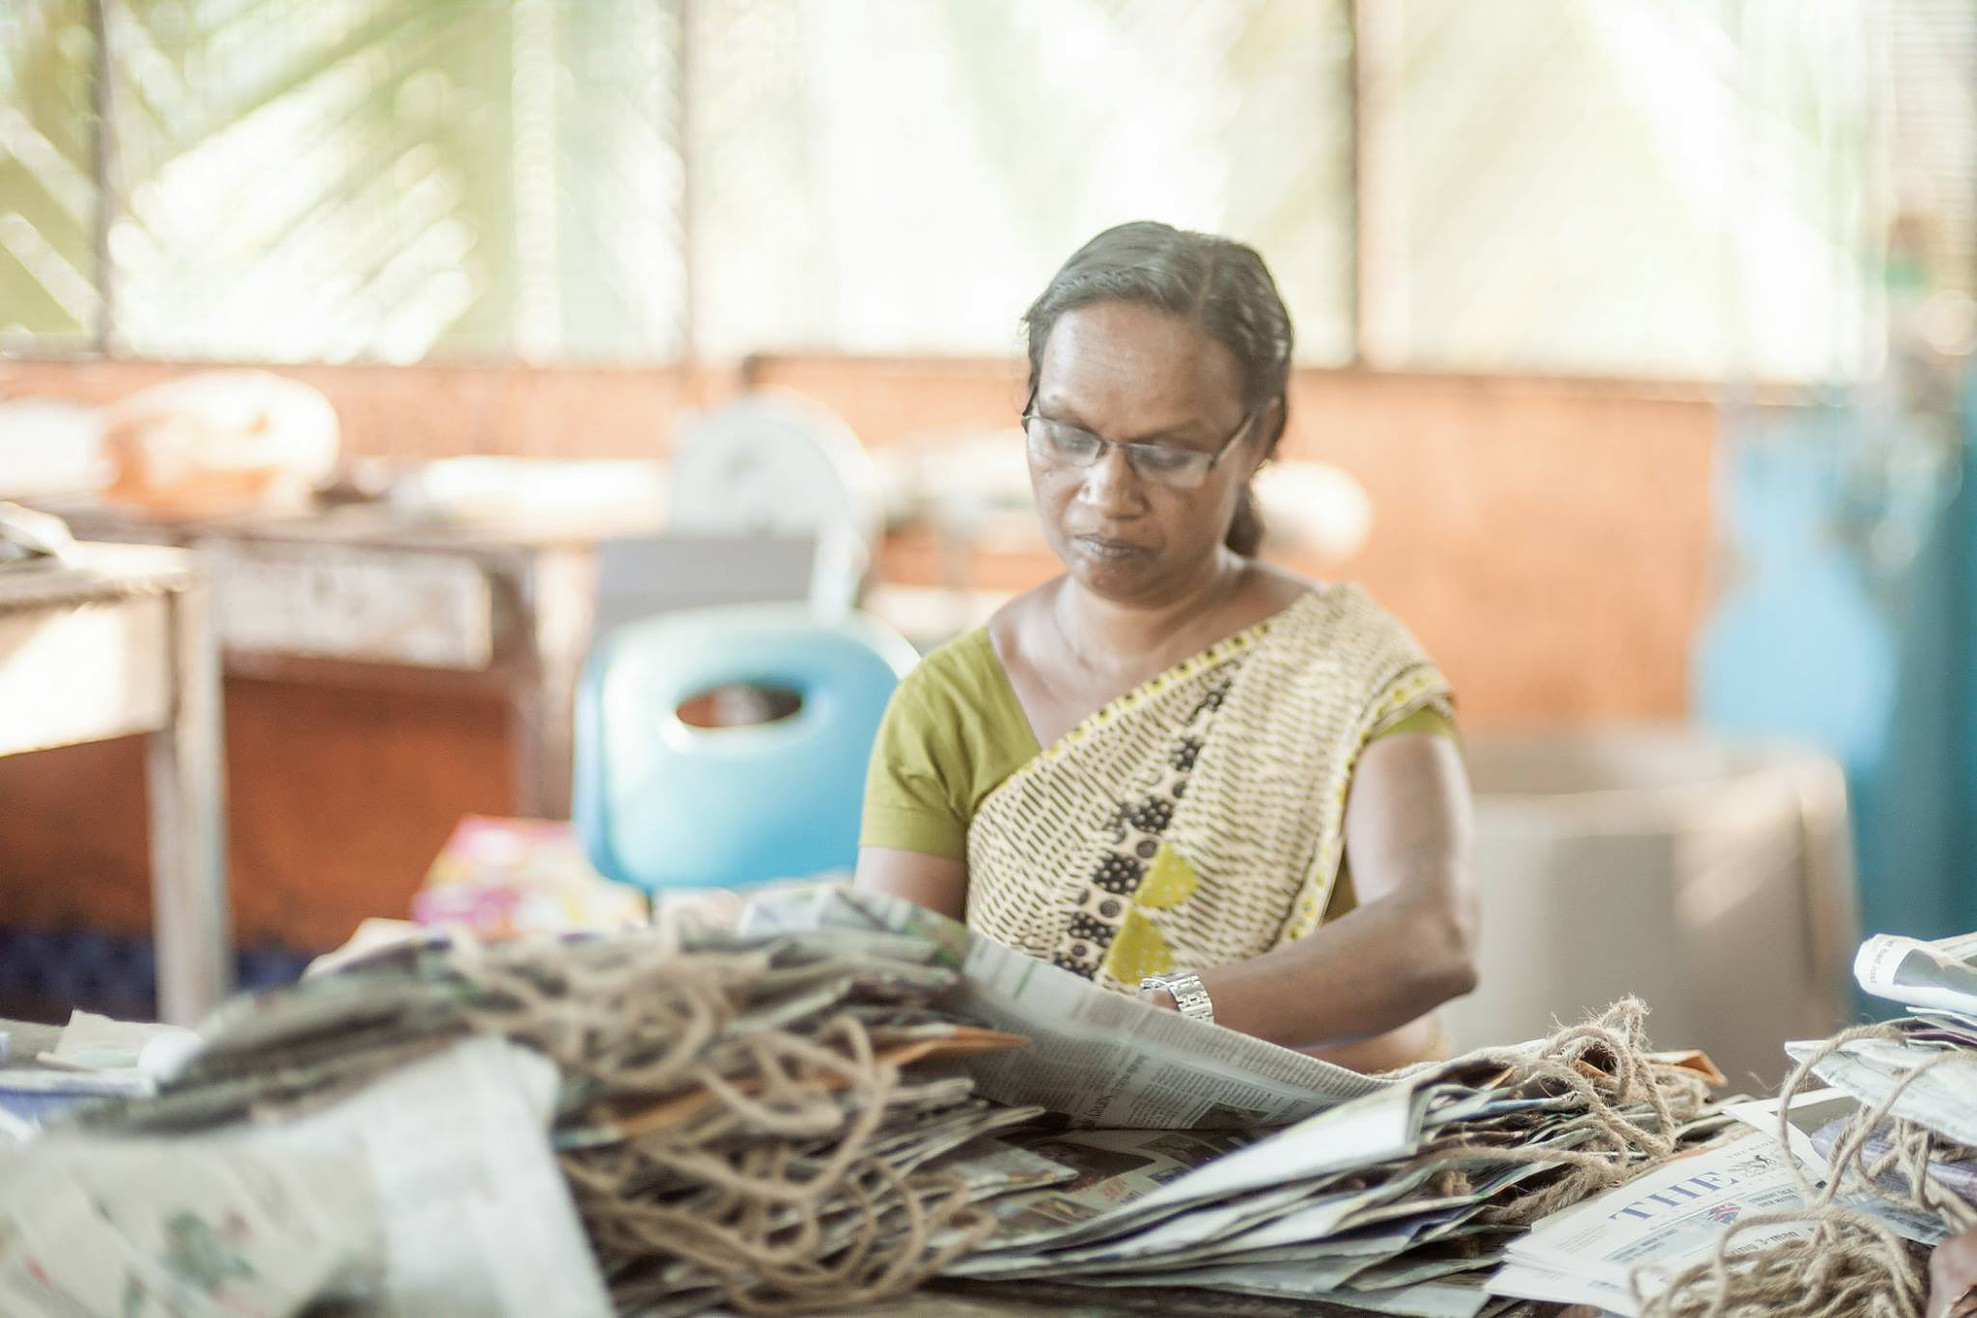 A local woman making recycled fair-trade bags. One of the many social employment programs that SISP has successfully implemented.